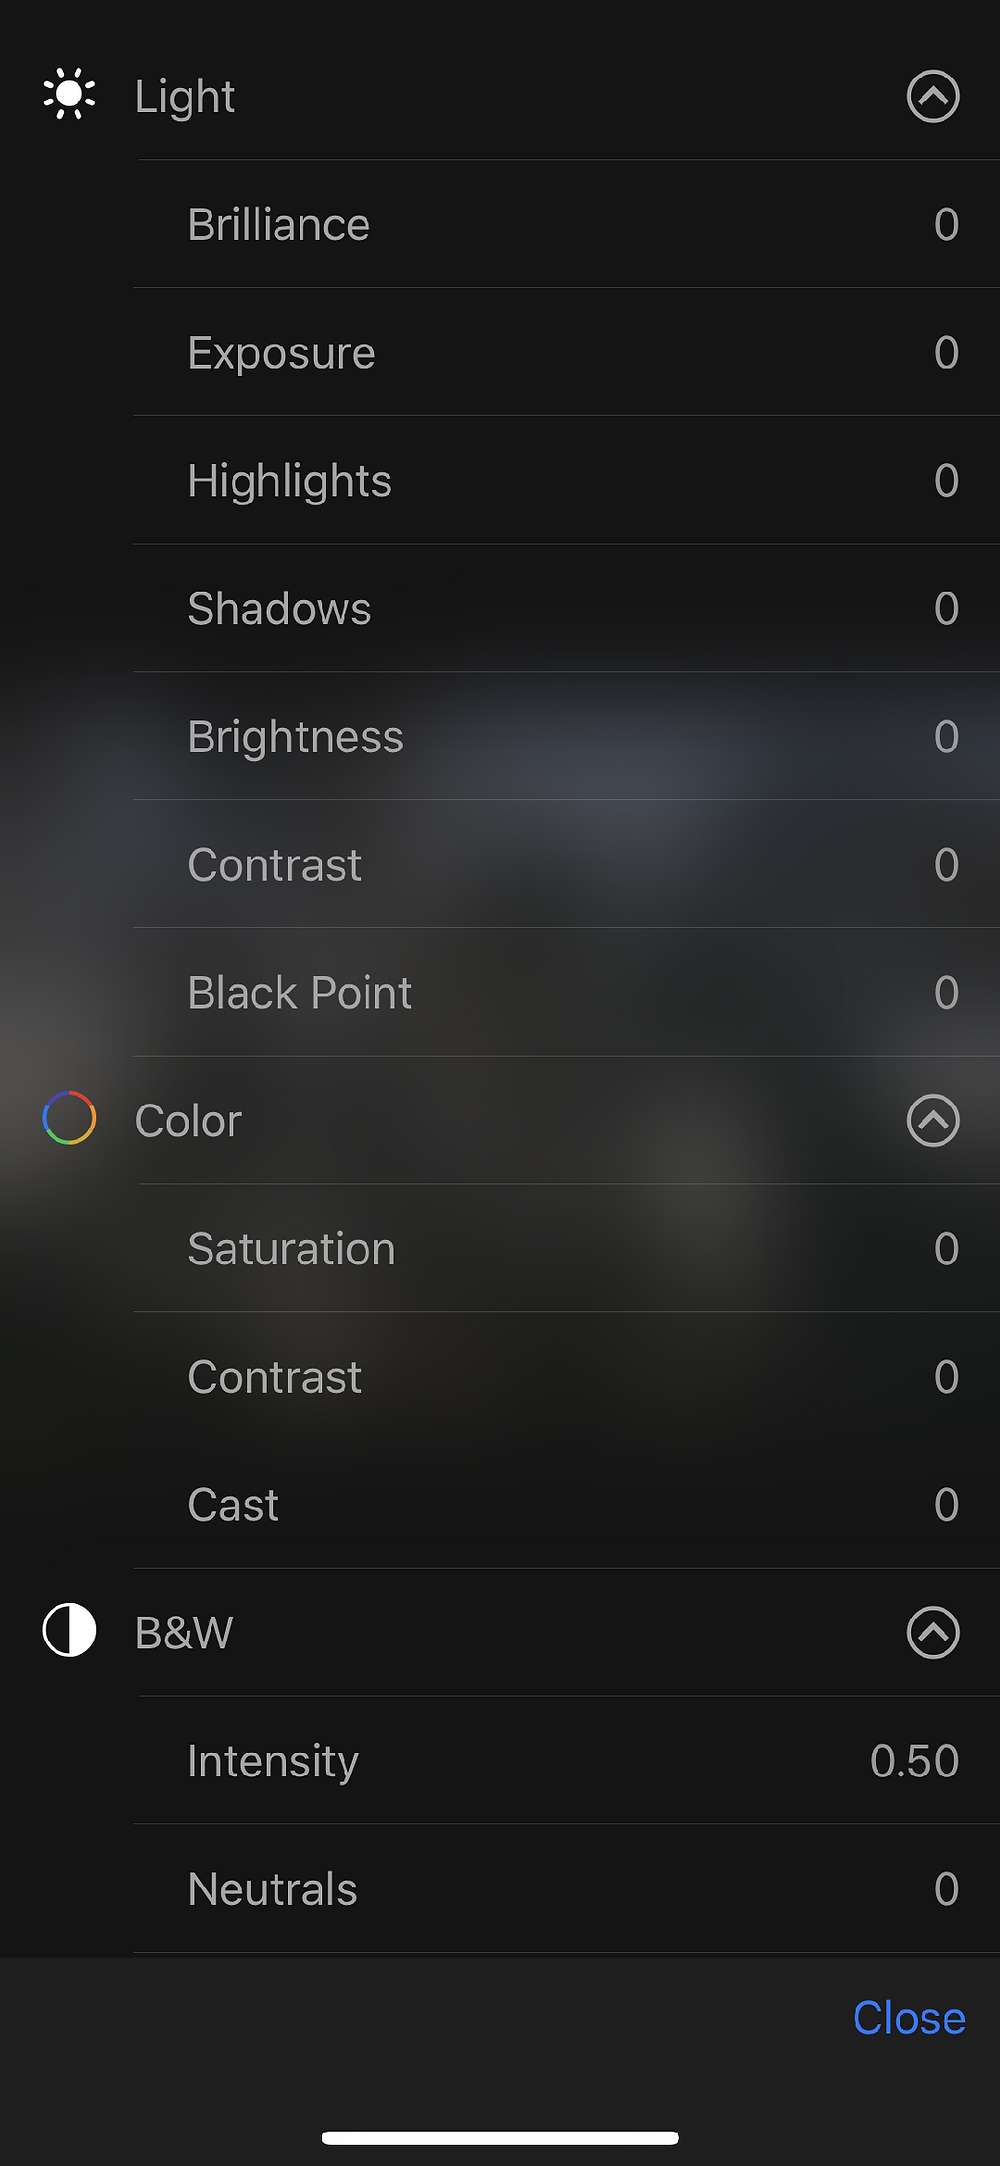 IPhone light color black and white edit options picture